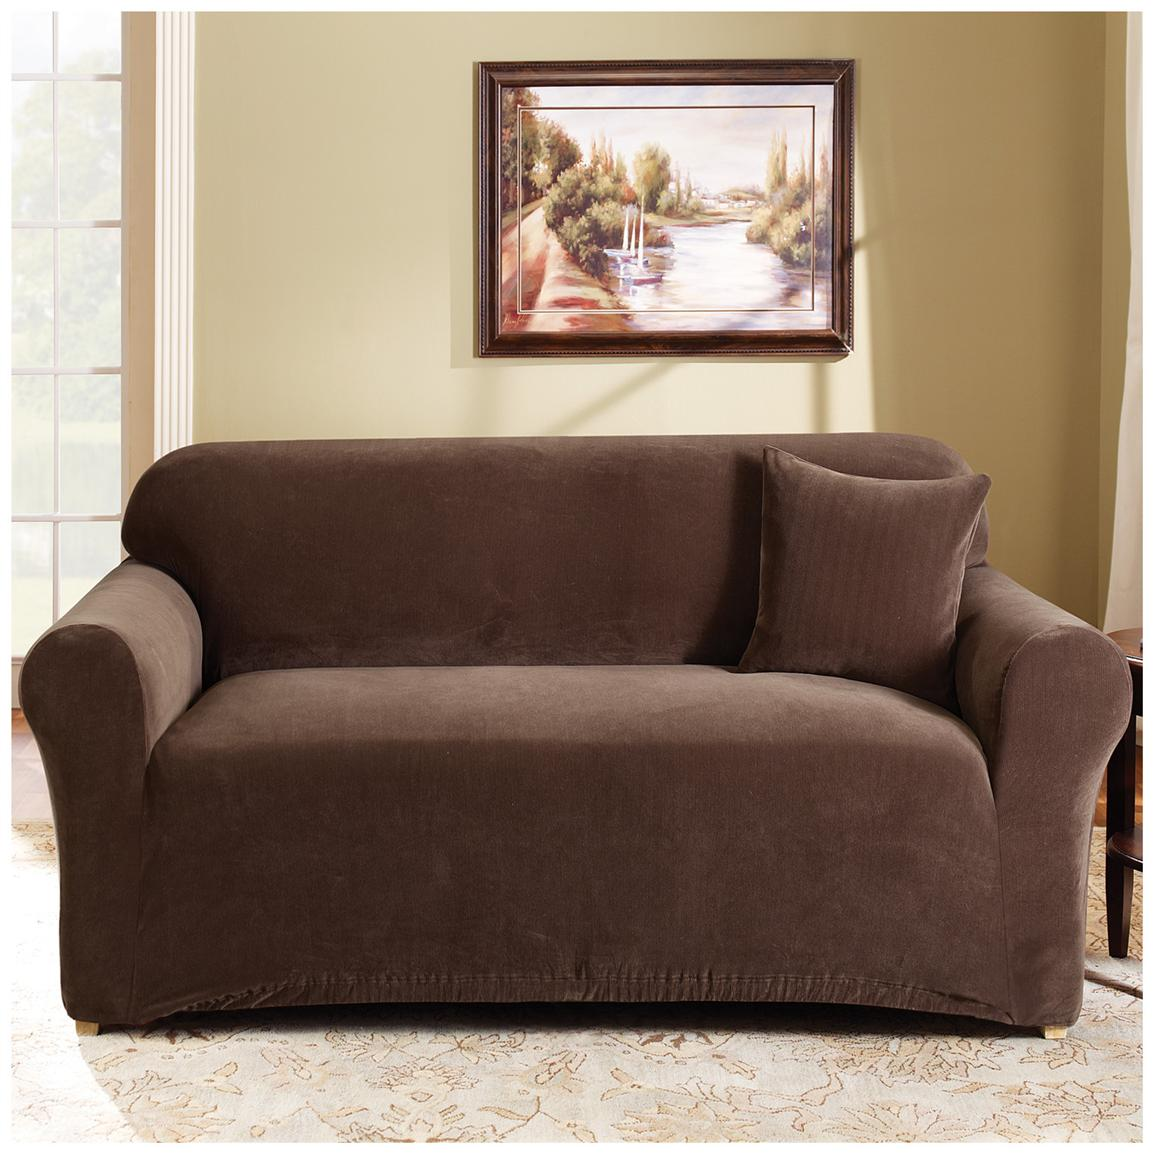 charming sofa with surefit cover in brown on white rug for living room decor ideas